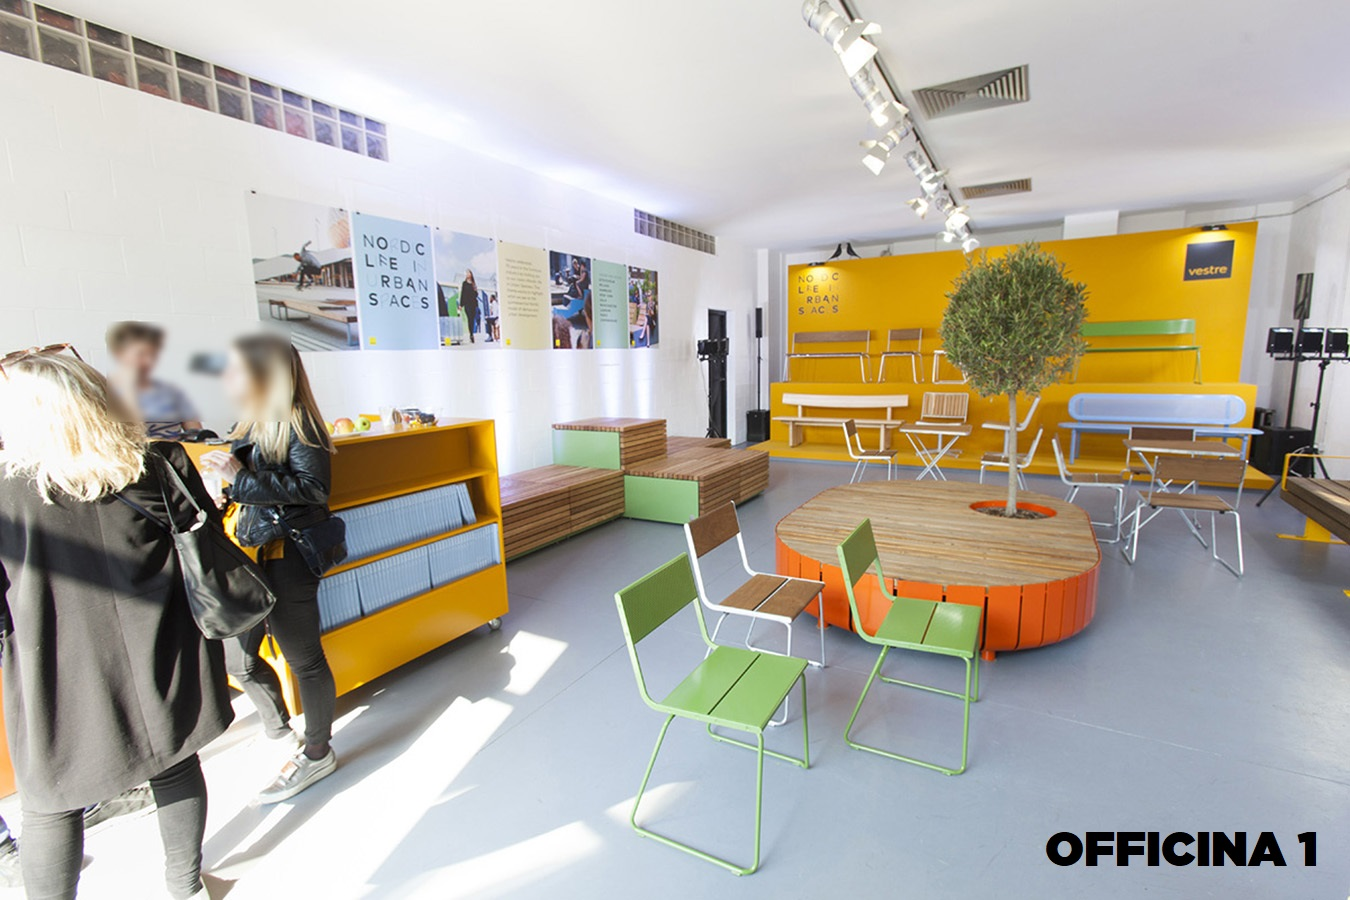 Opificio 31-Officine Cova - Officina, Open space, Showroom, Spazio outdoor di 320mq in Via Tortona 31 | location disallestita 5